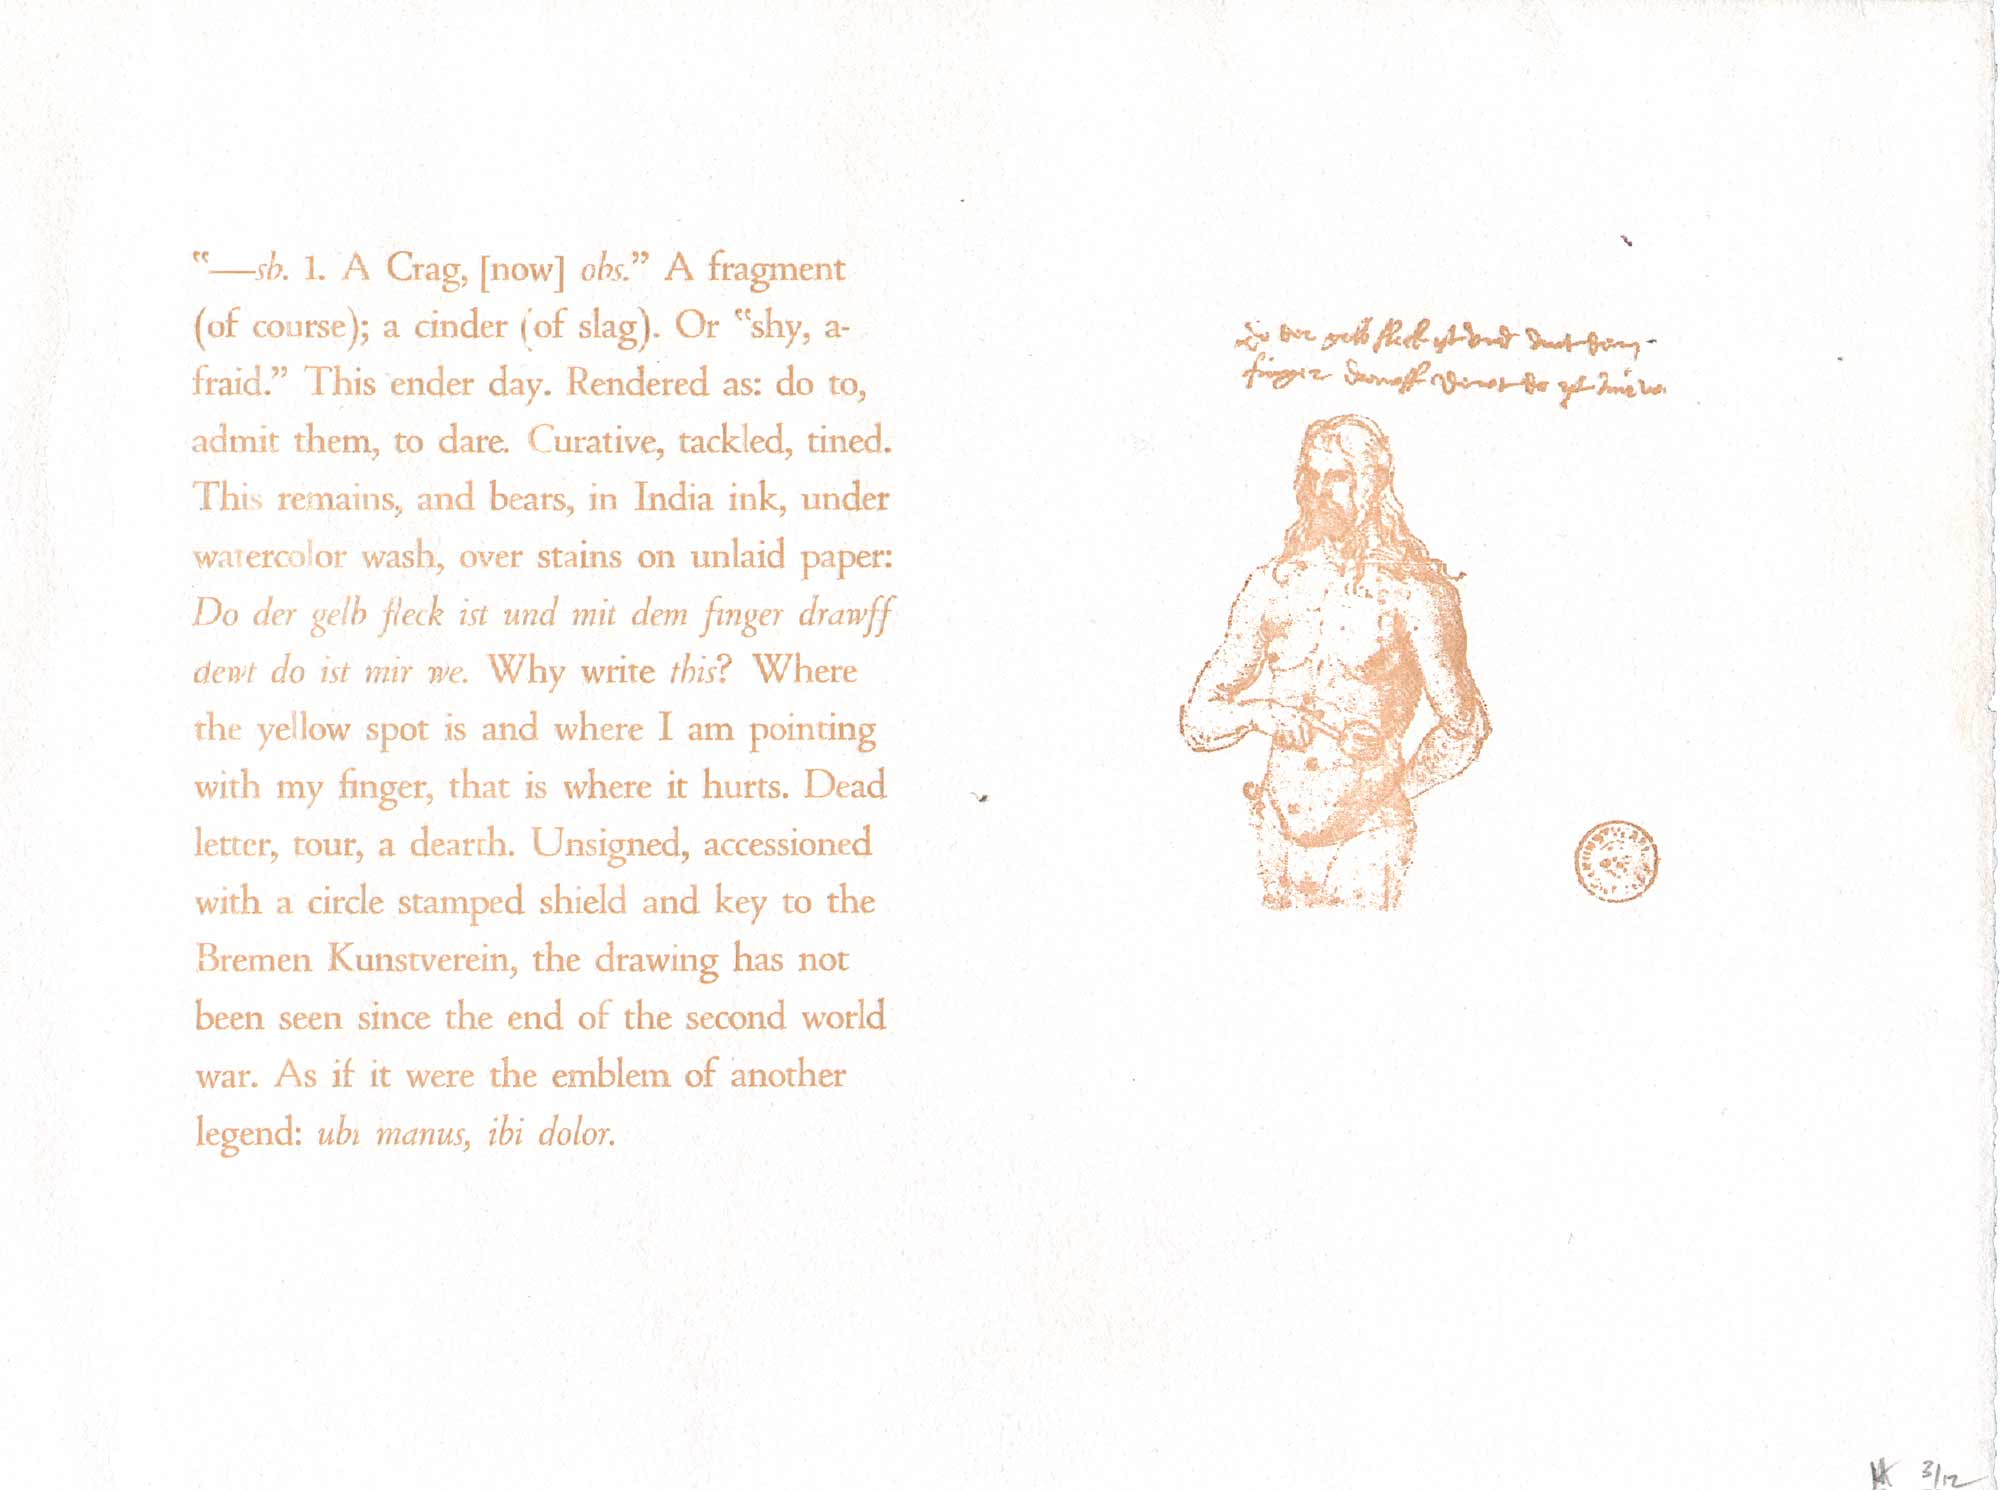 image of broadside by Craig Dworkin (Annon): --sh. 1. A Crag, now obs. A fragment (of coarse); a cinder (of slag). Or shy, afraid. This ender day. Rendered as do to, admit them, to dare. Curative, tackled, tined. The remains, and bears, in India ink, under watercolor wash, over stains on unlaid paper: Do des ...Why write this? Where the yellow spot is and where I am pointing with my finger, that is where it hurts. Dead letter, pour, a dearth. Unsigned, accessioned with a circle stamped shield and key to the Bremen Kunsteverein, the drawing has not been seen since the end of the second world war. As if it were the emblem of another legend: ....